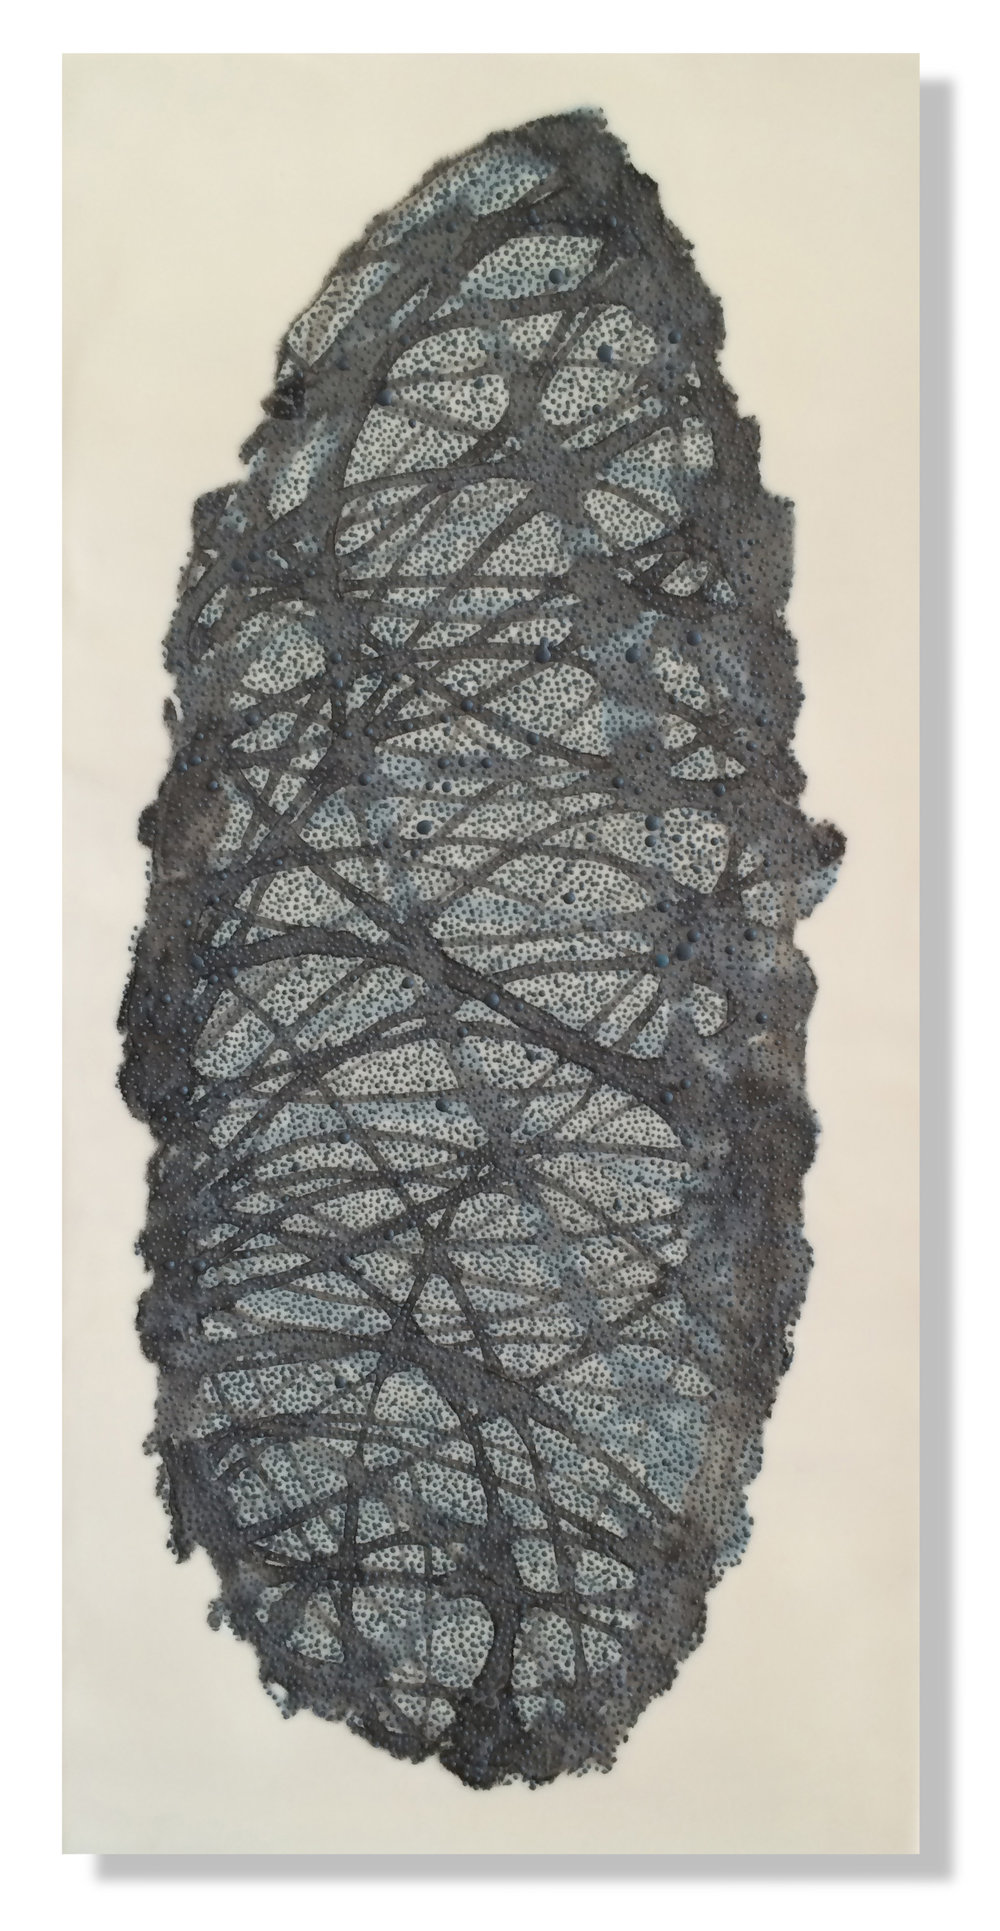 "Cocoon 3B, 2015 Encaustic, Mulberry Paper, Watercolor 12"" x 24"" x 1"" SOLD"